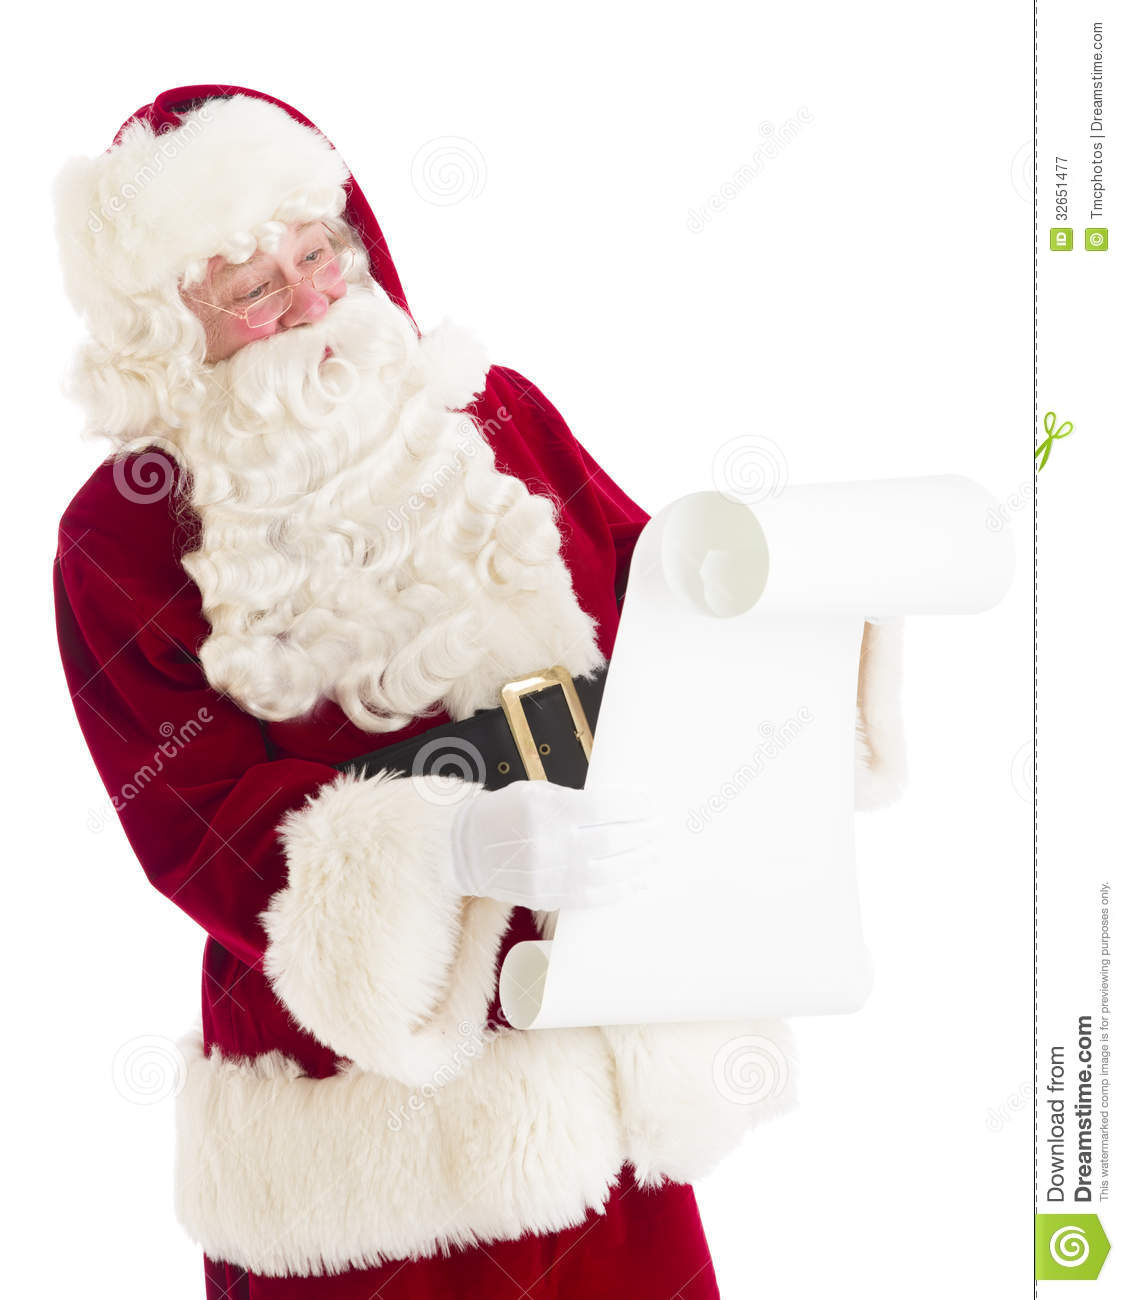 Santa Claus Reading Wish List Royalty Free Stock Photography - Image ...